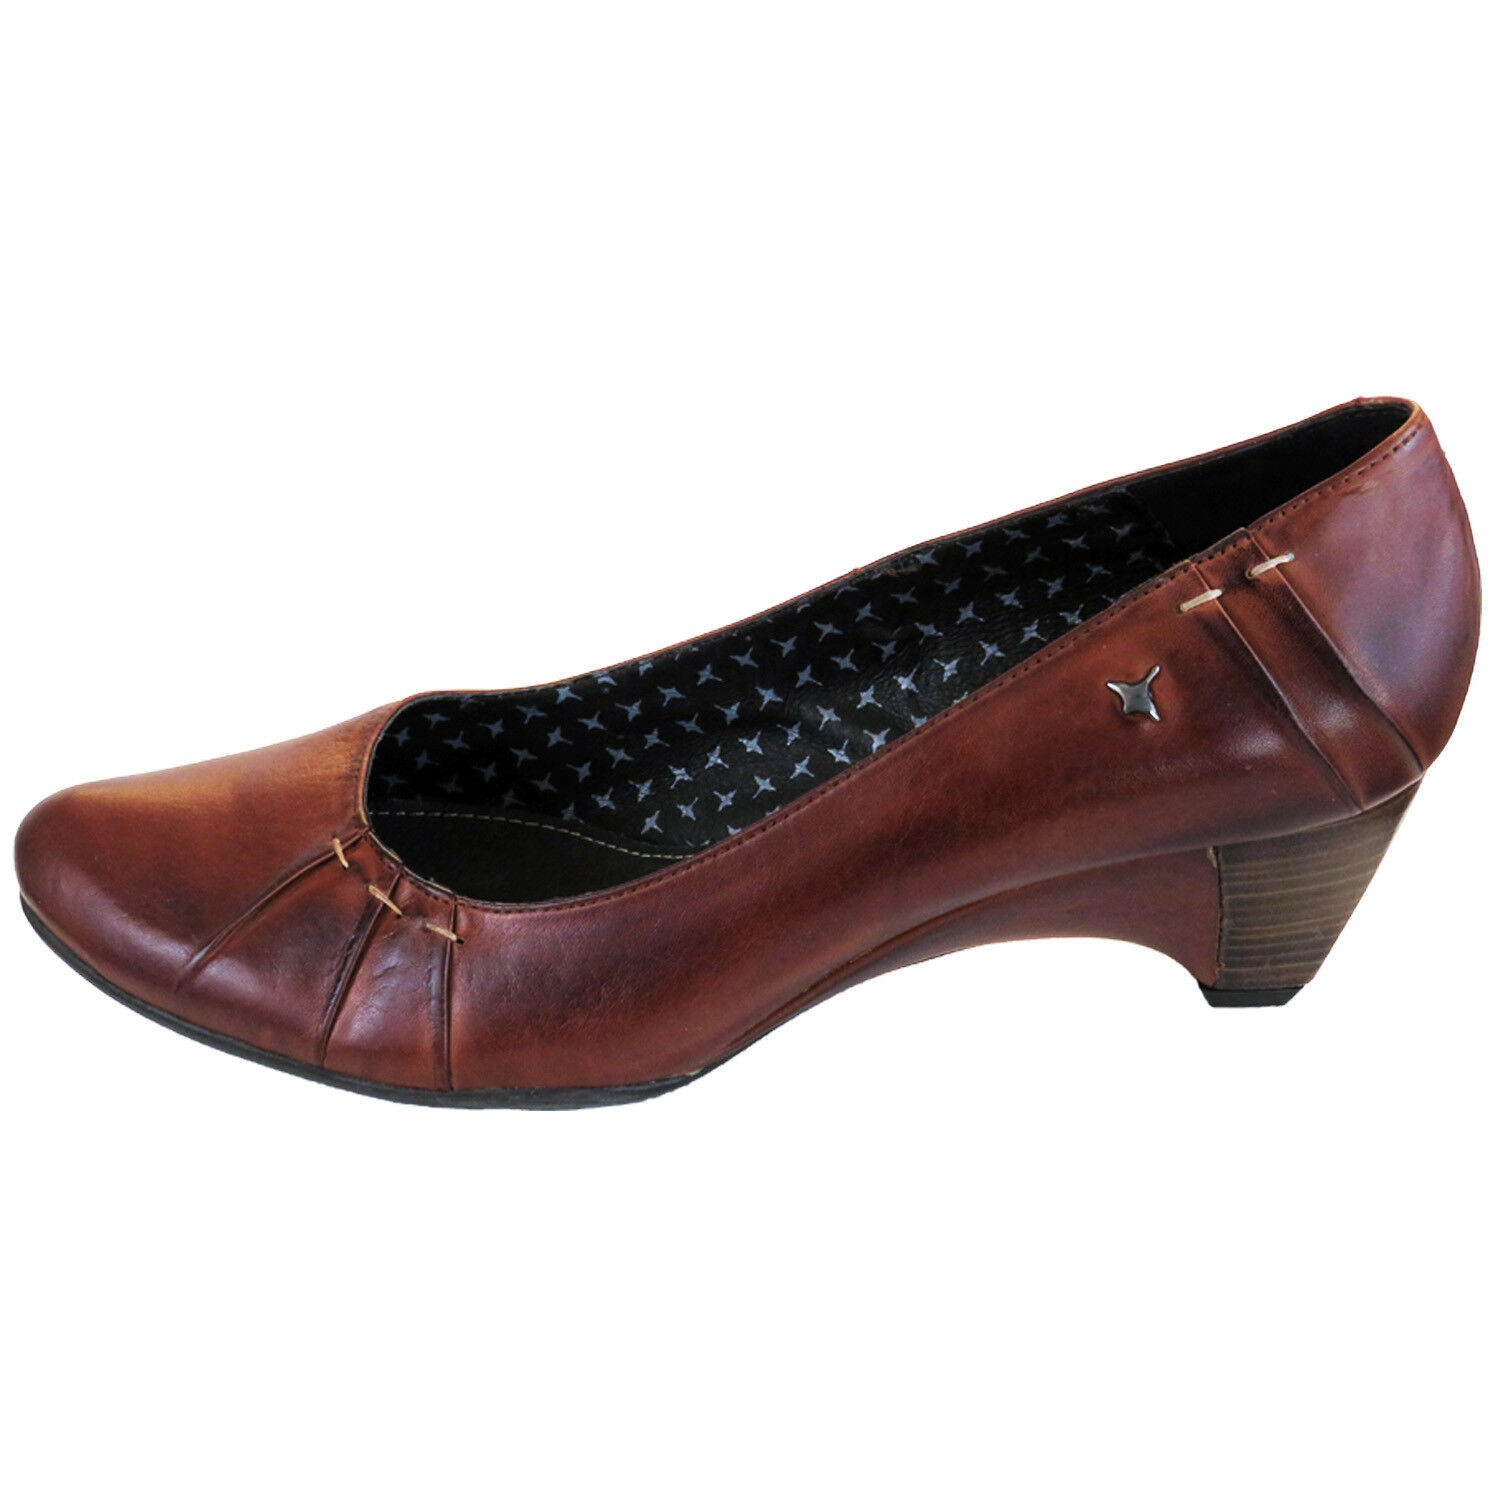 PIKOLINOS WOMENS WOMENS WOMENS COURT SHOES SLIP ON HEELS BROWN LEATHER CUERO  UK 7 003686